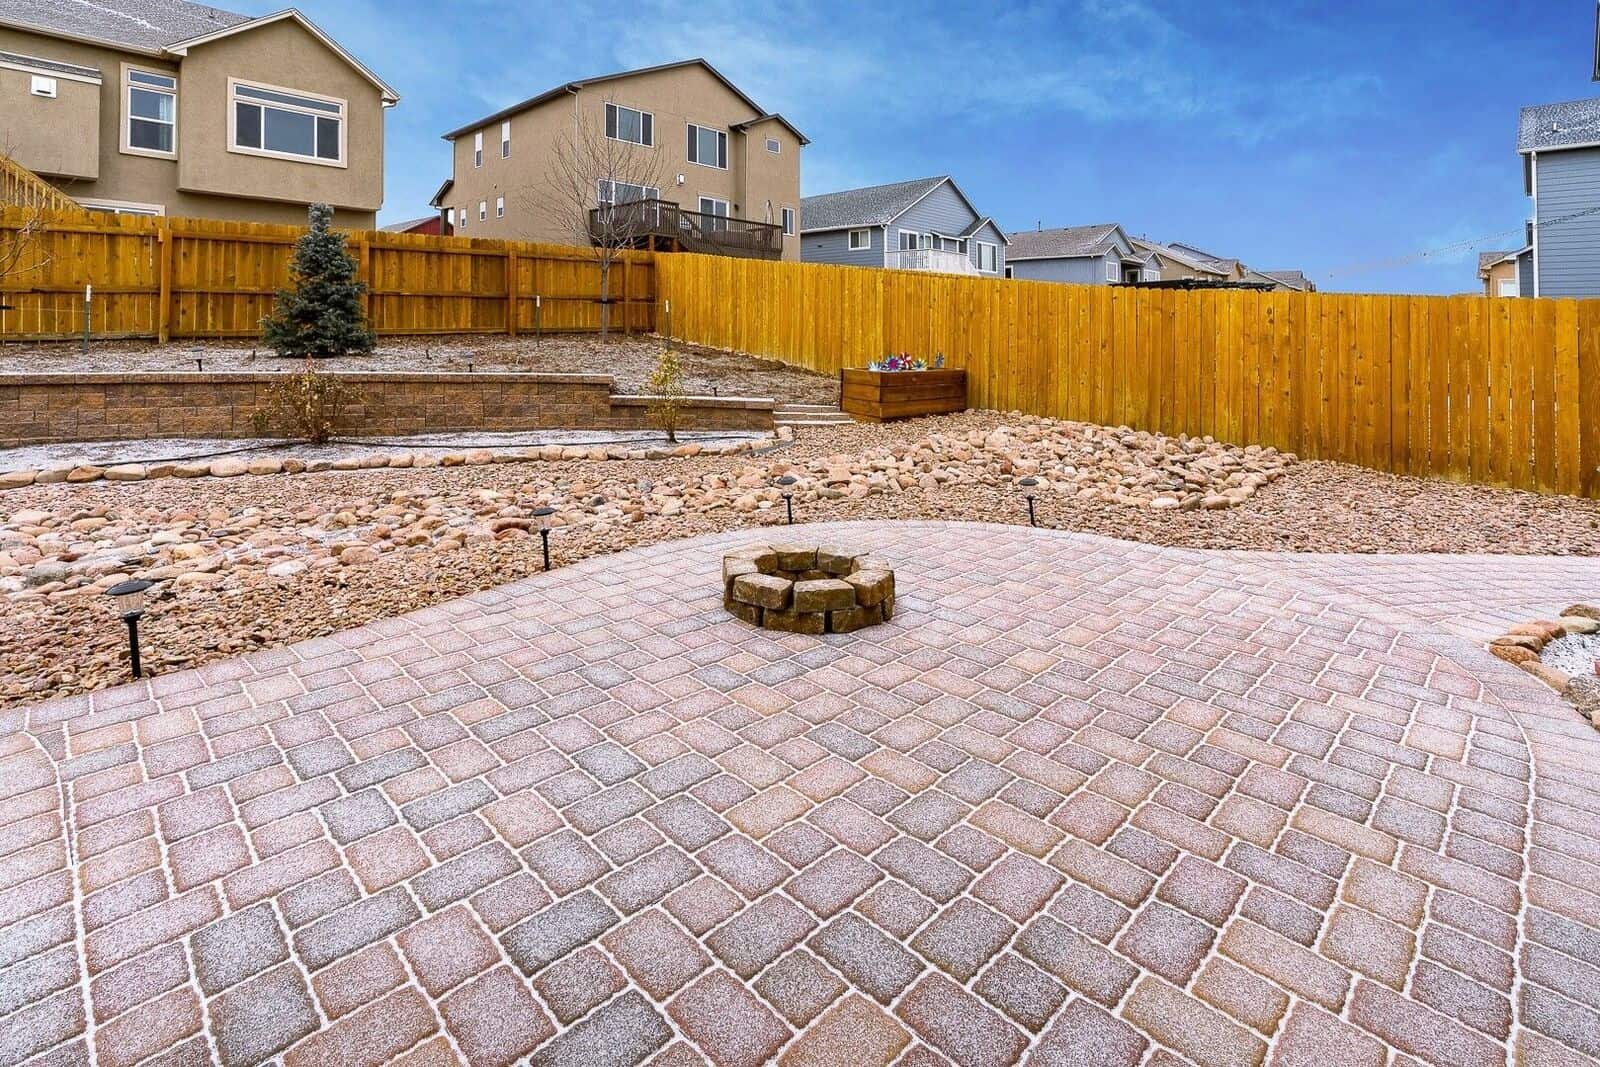 Paver Patio with Walkway to Garage Entry